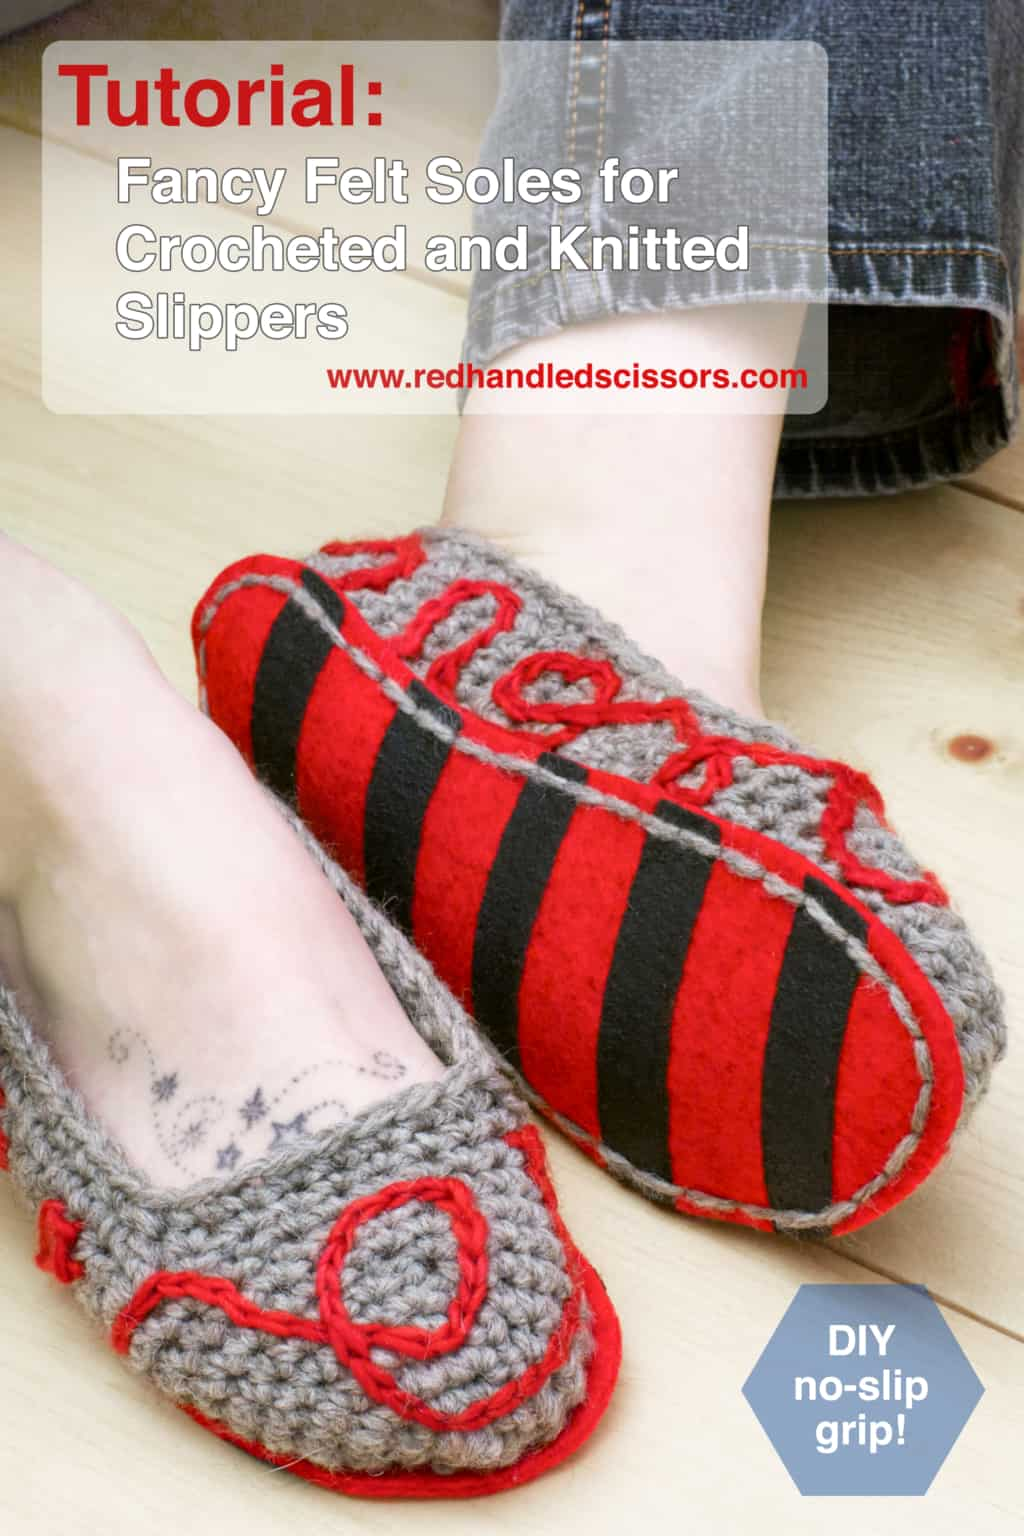 Crocheted slippers with no-slip felt soles